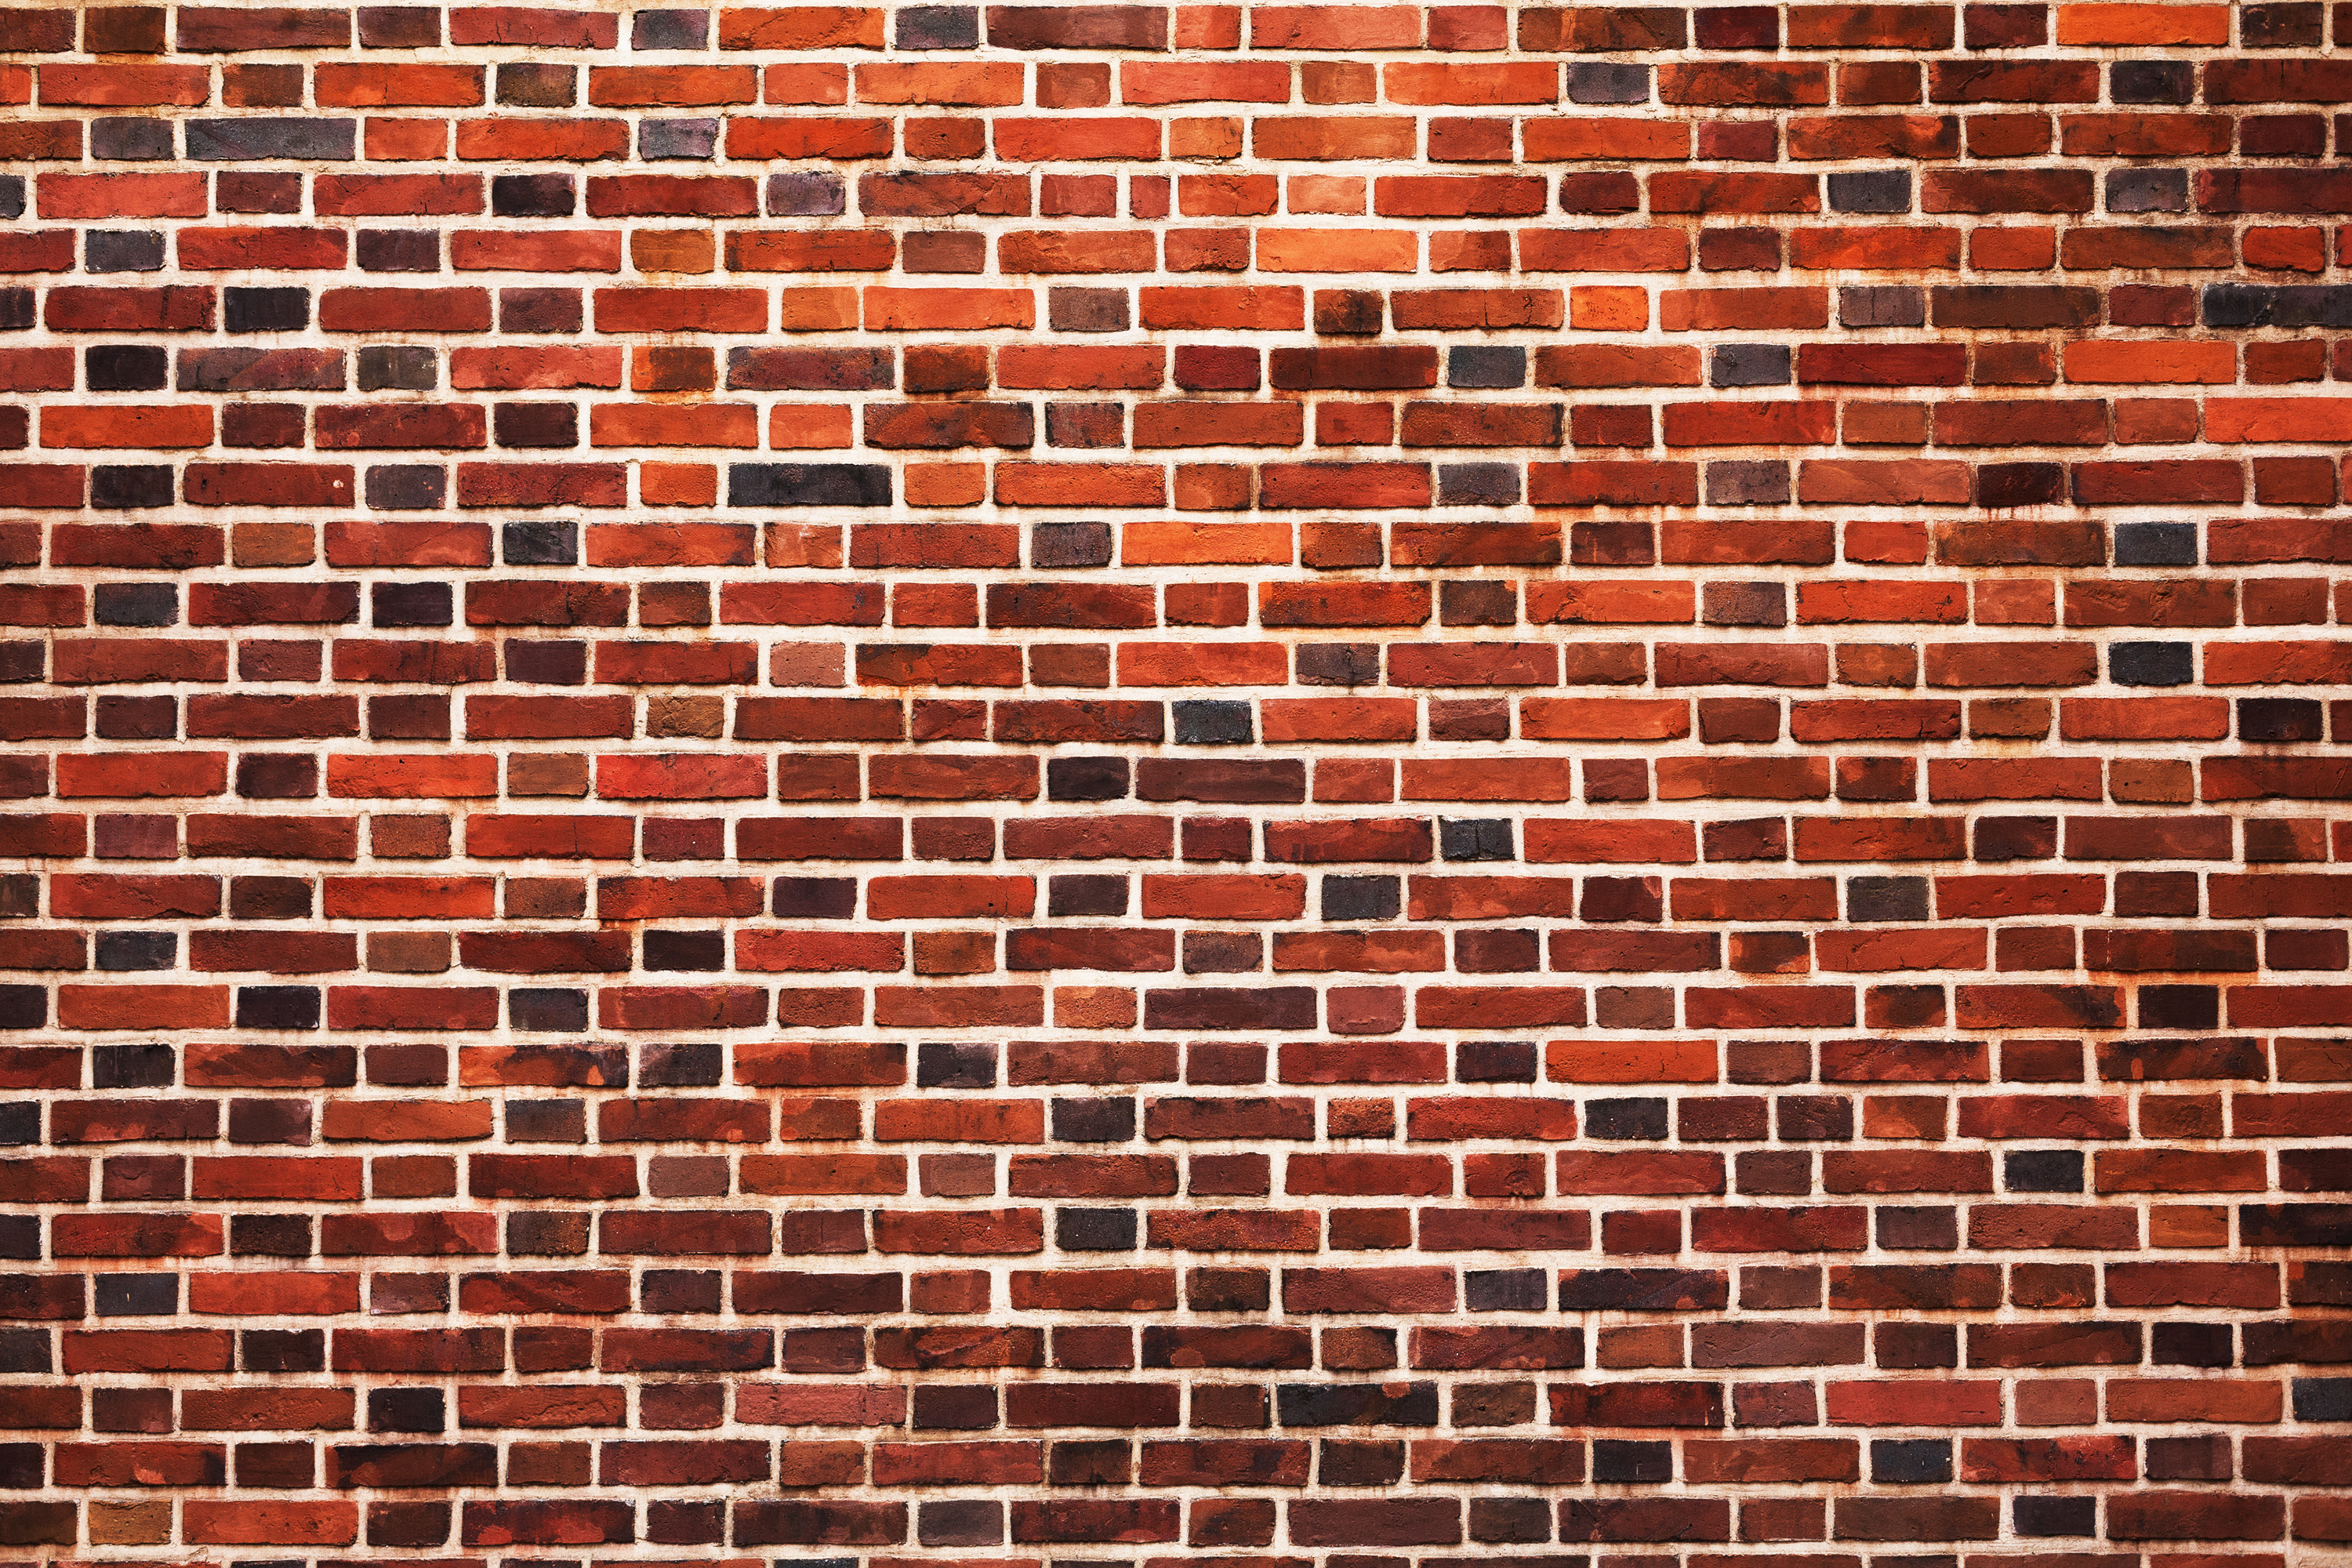 Brick Wall Design Brick Wall Texture